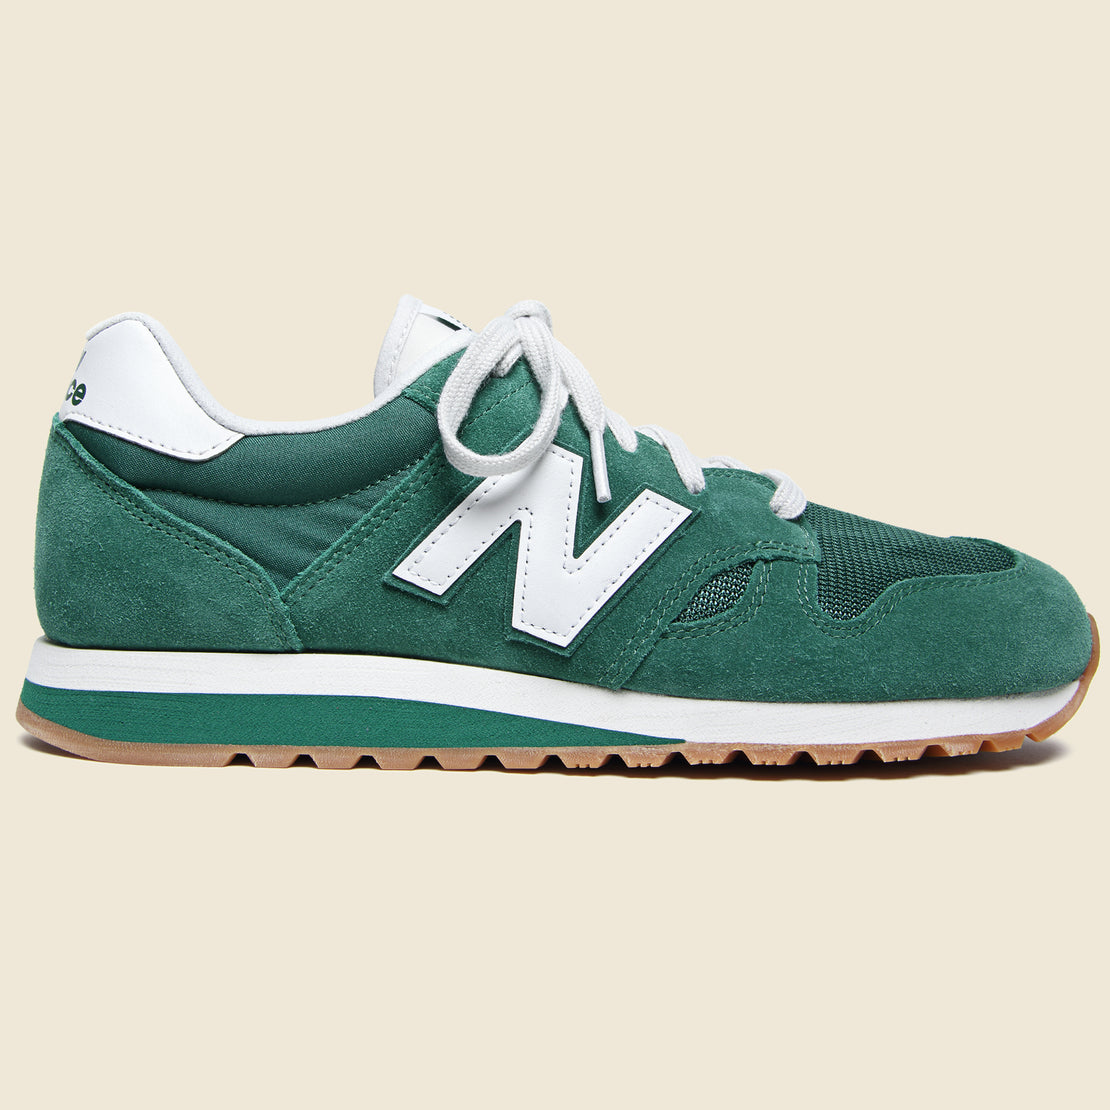 New Balance 520 Sneaker - Forest Green